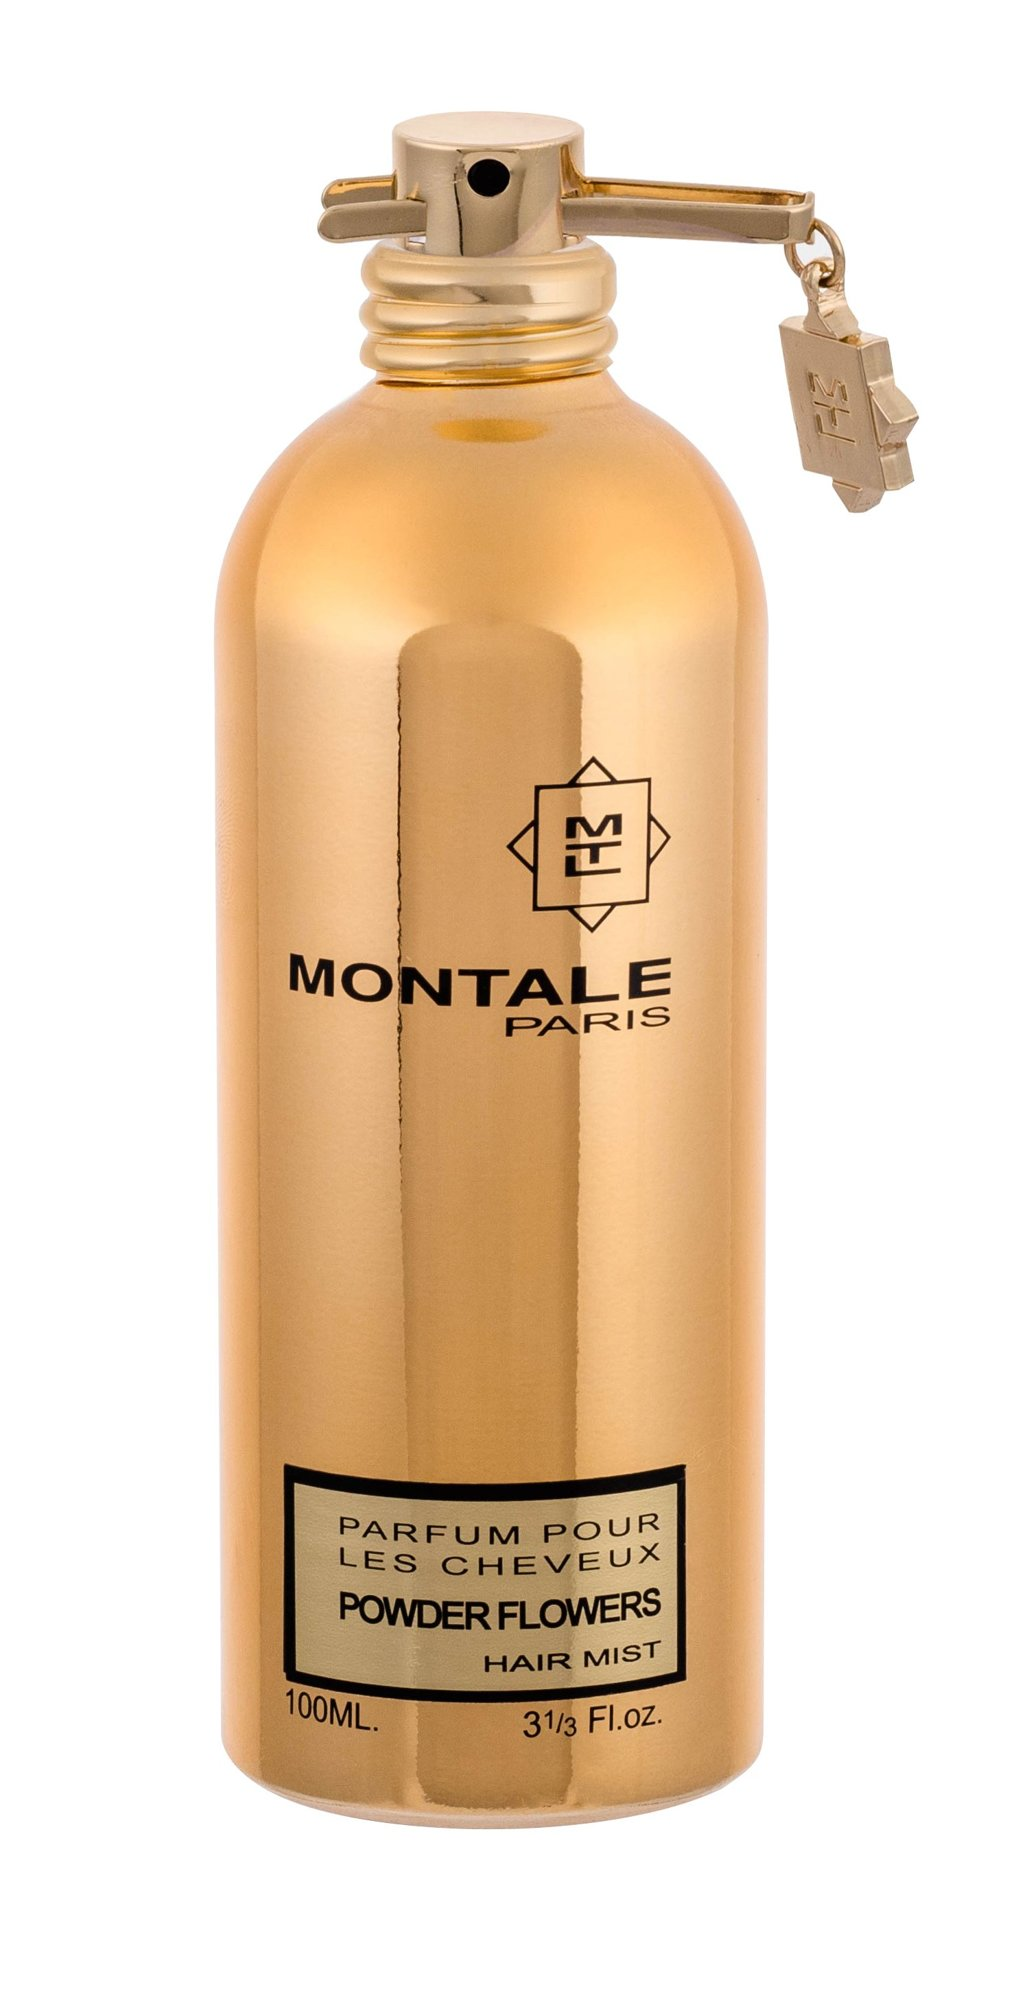 Montale Paris Powder Flowers Hair Mist 100ml